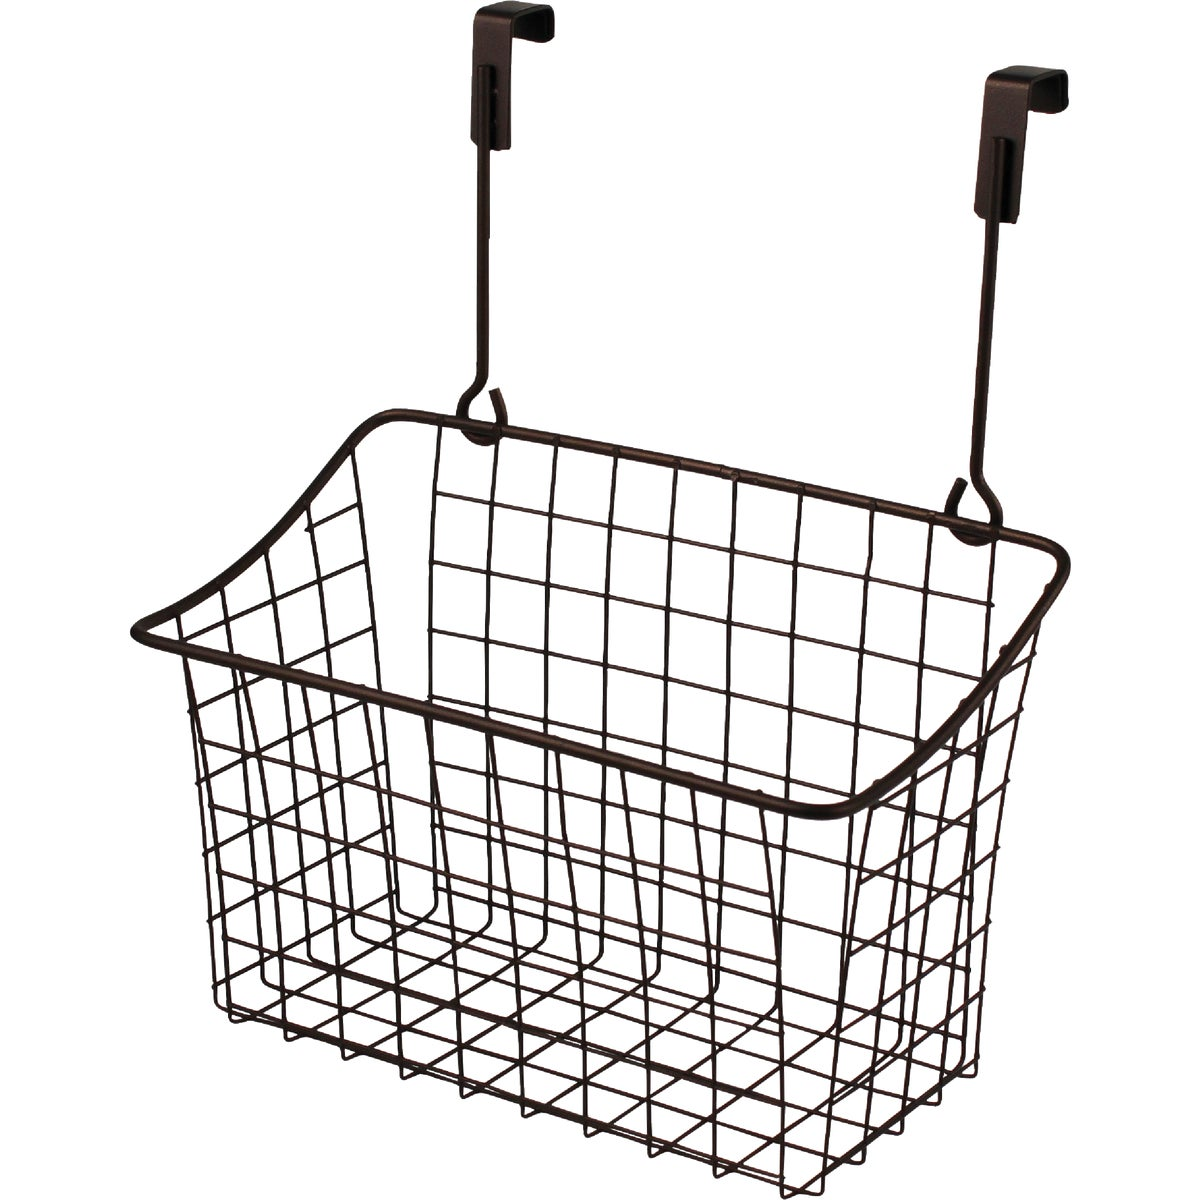 OTCD MEDIUM GRID BASKET - 56224 by Spectrum Diversified